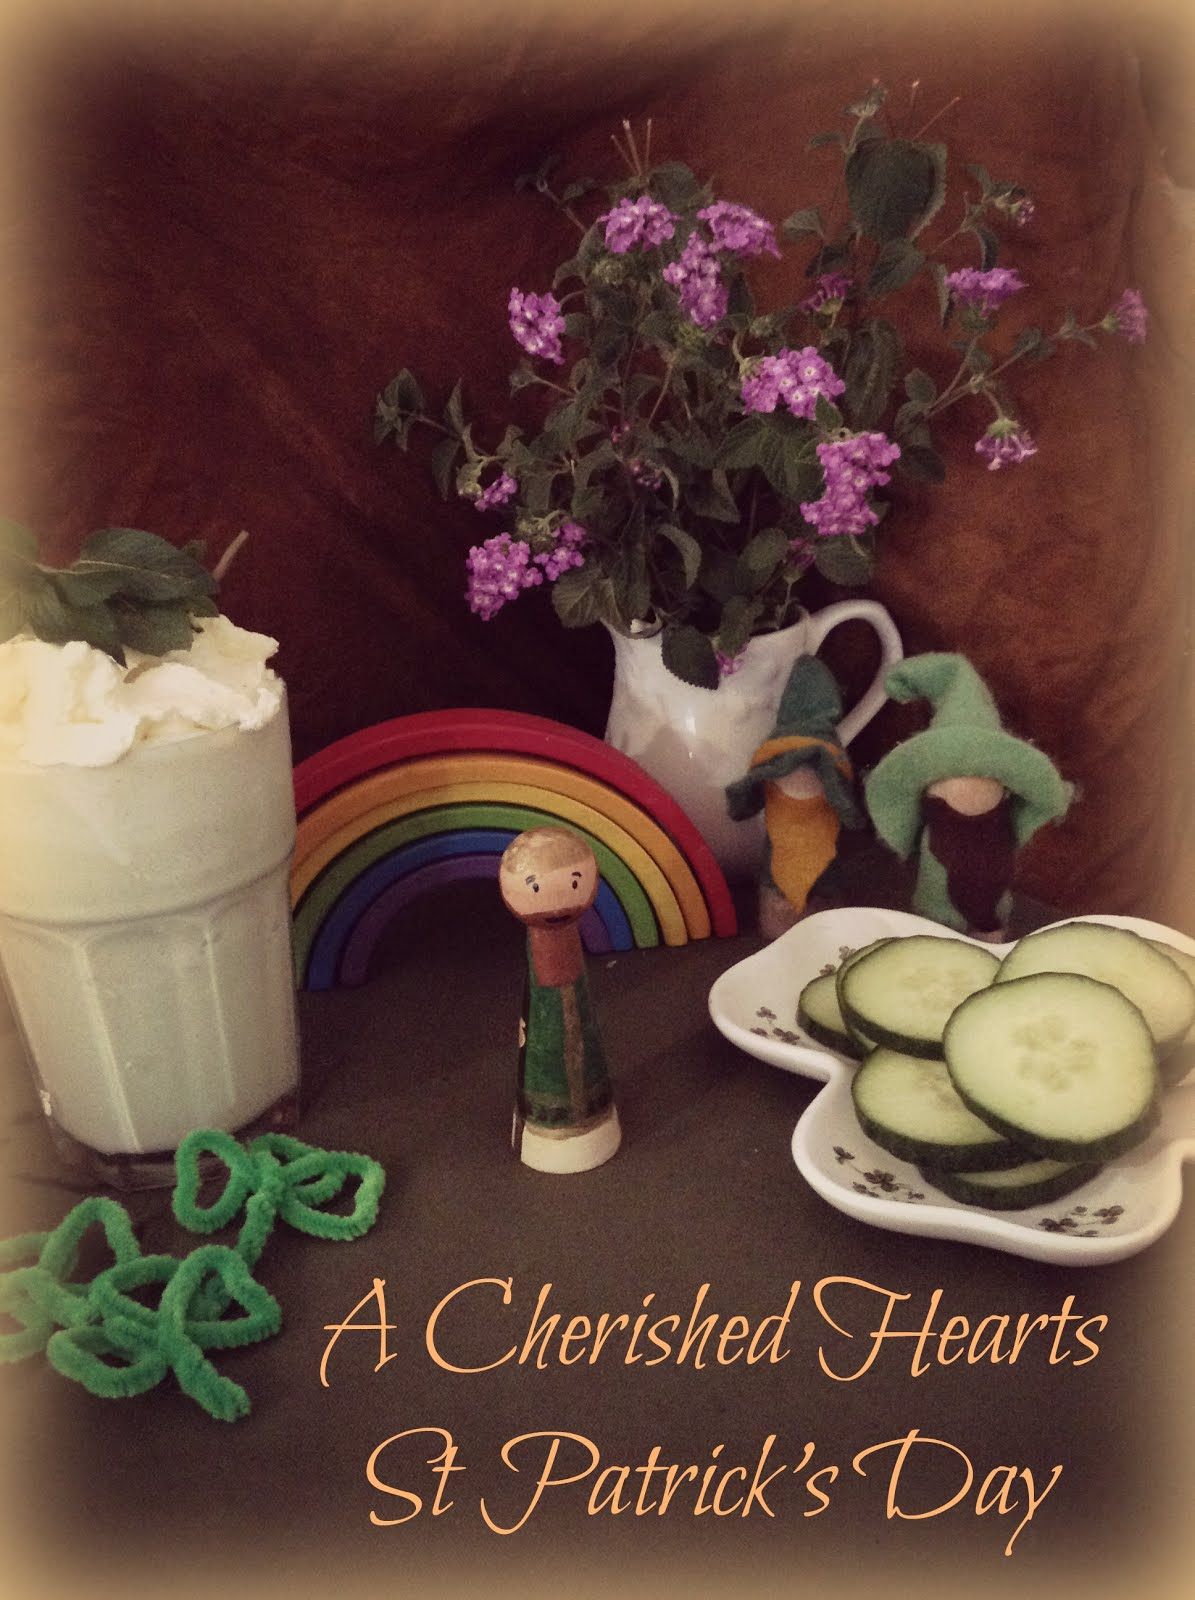 My St Patrick's Day e-book!